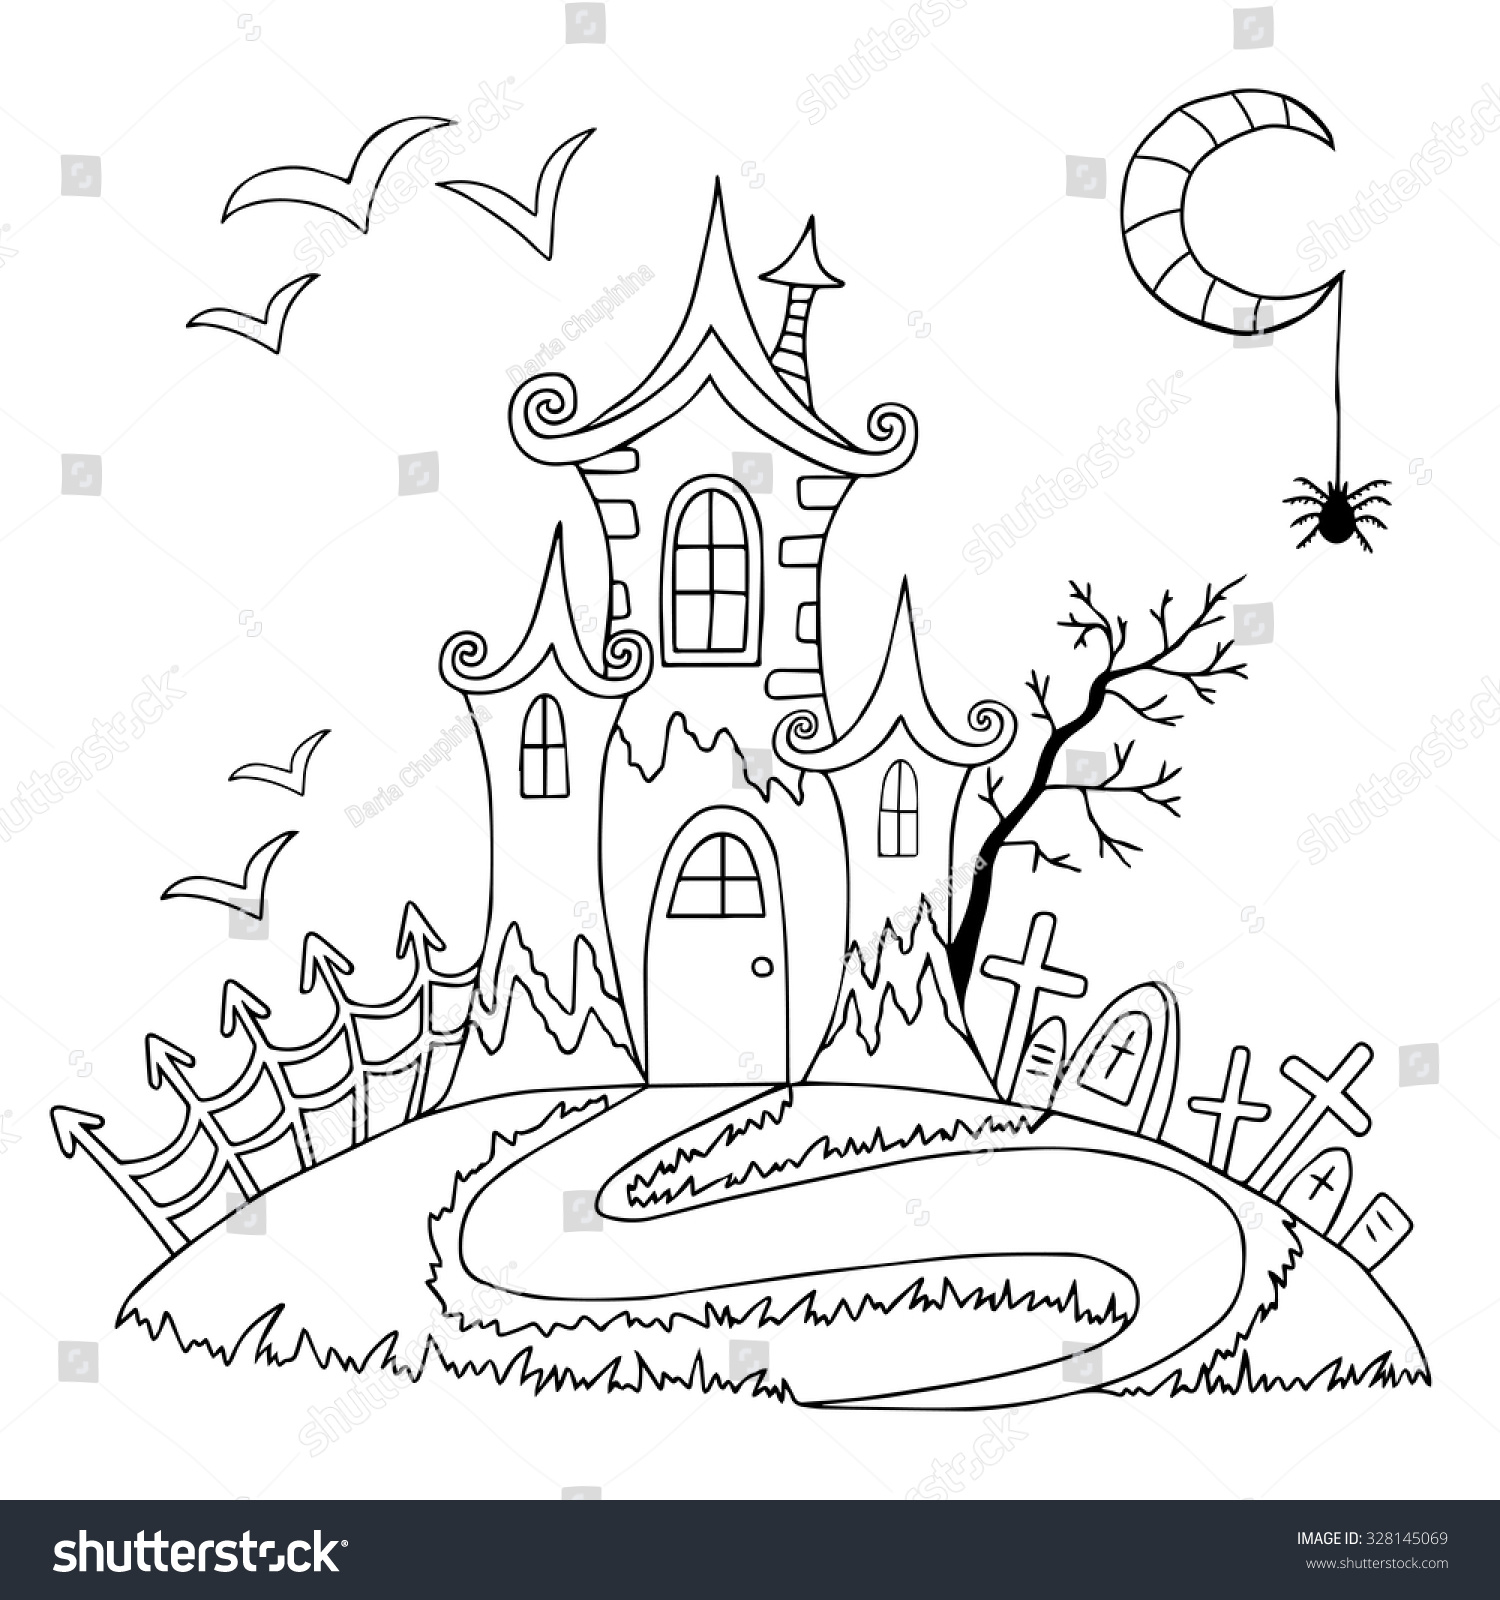 Doodle Halloween Coloring Book Vector Illustration With Spooky Castle And Bats Tree